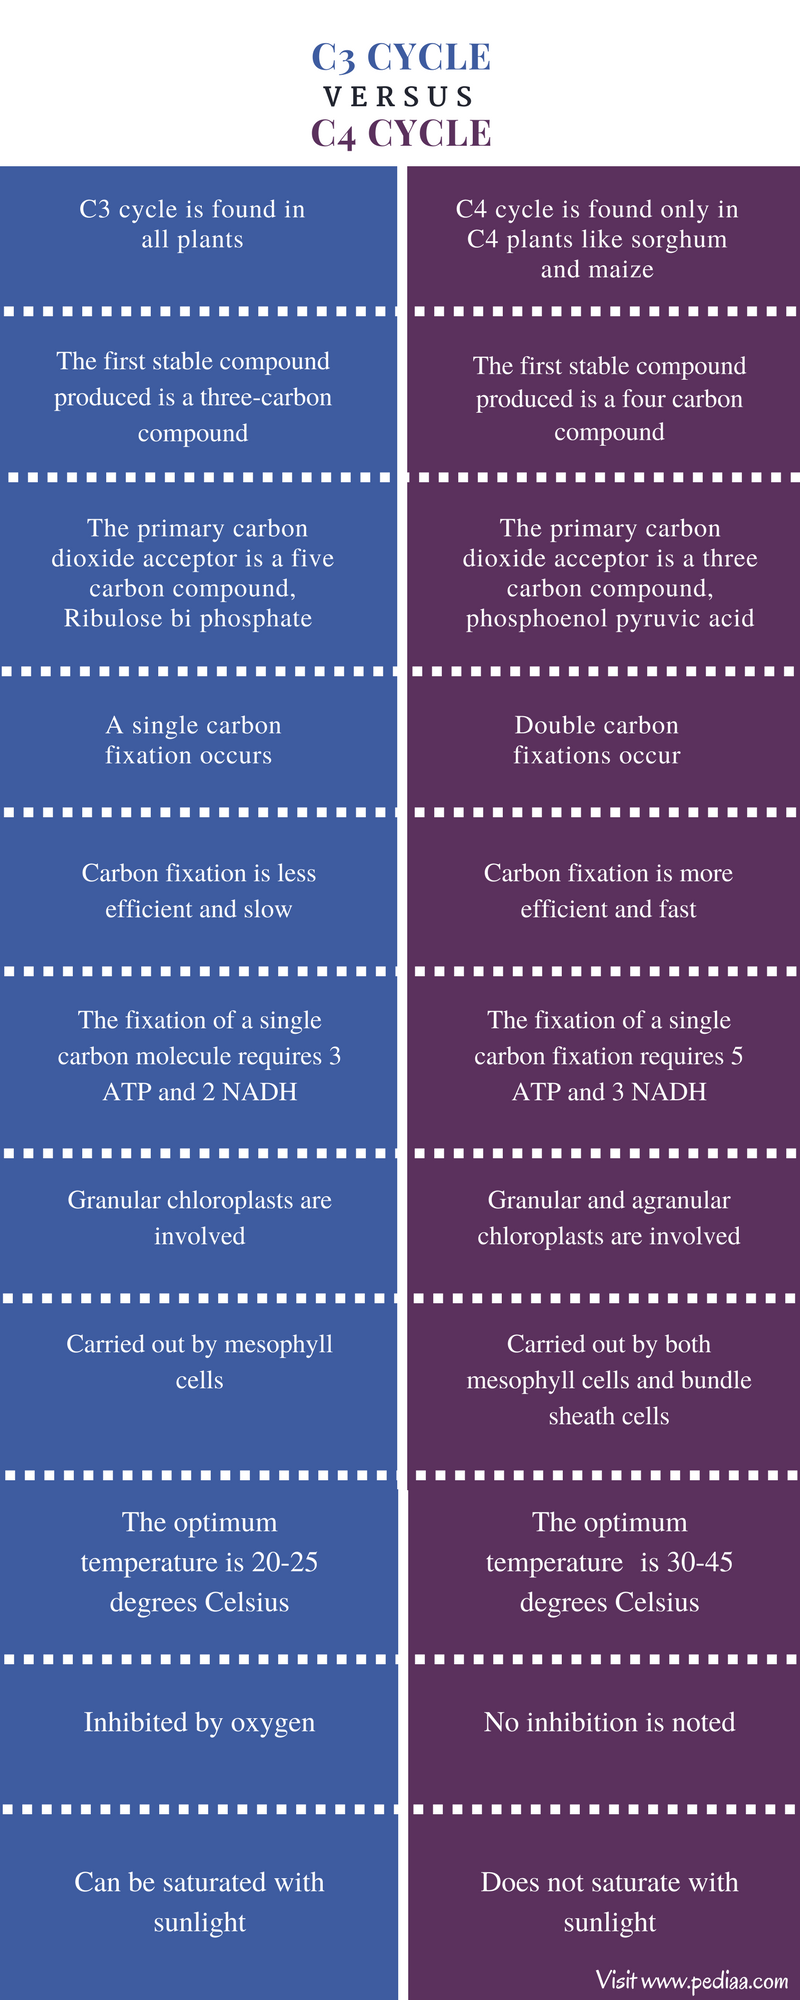 Difference Between C3 and C4 Cycle - Comparison Summary